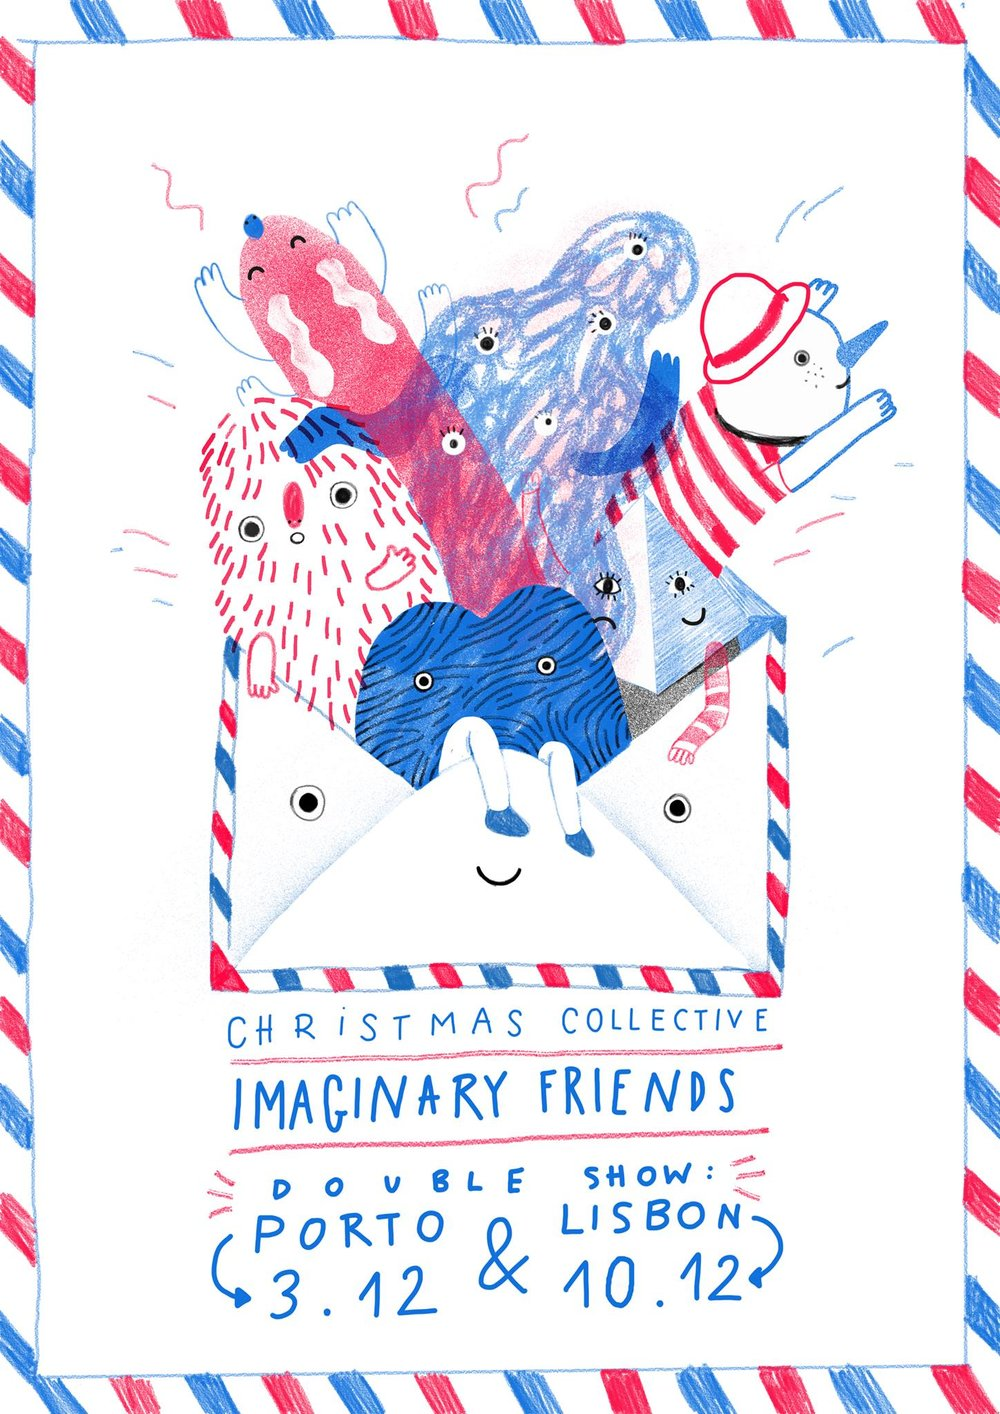 imaginary-friends